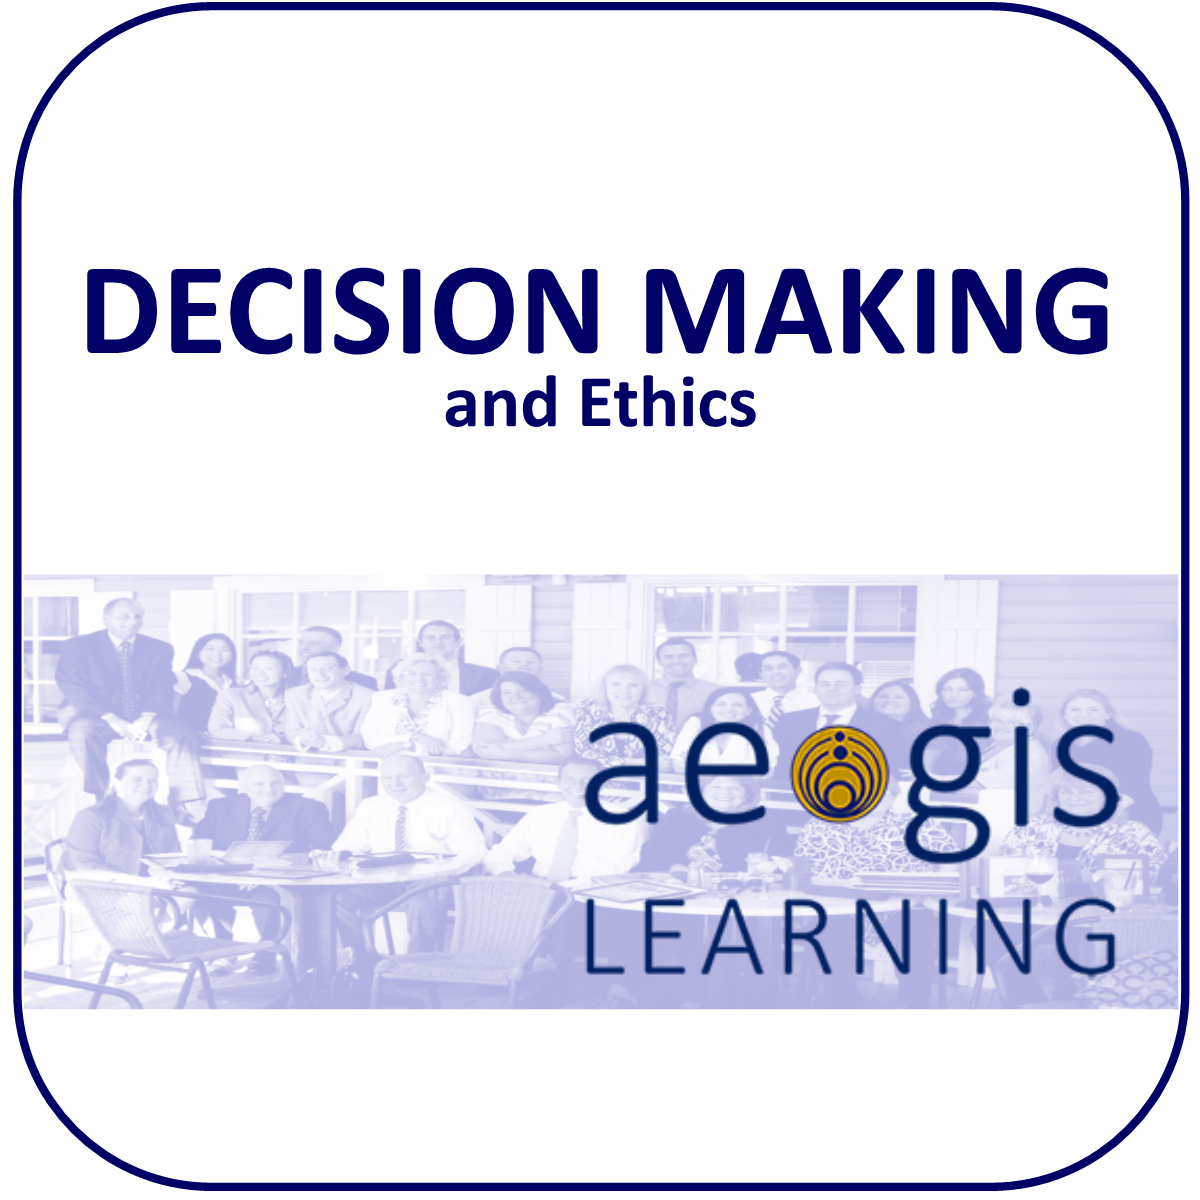 Decision Making and Ethics from Aegis Learning